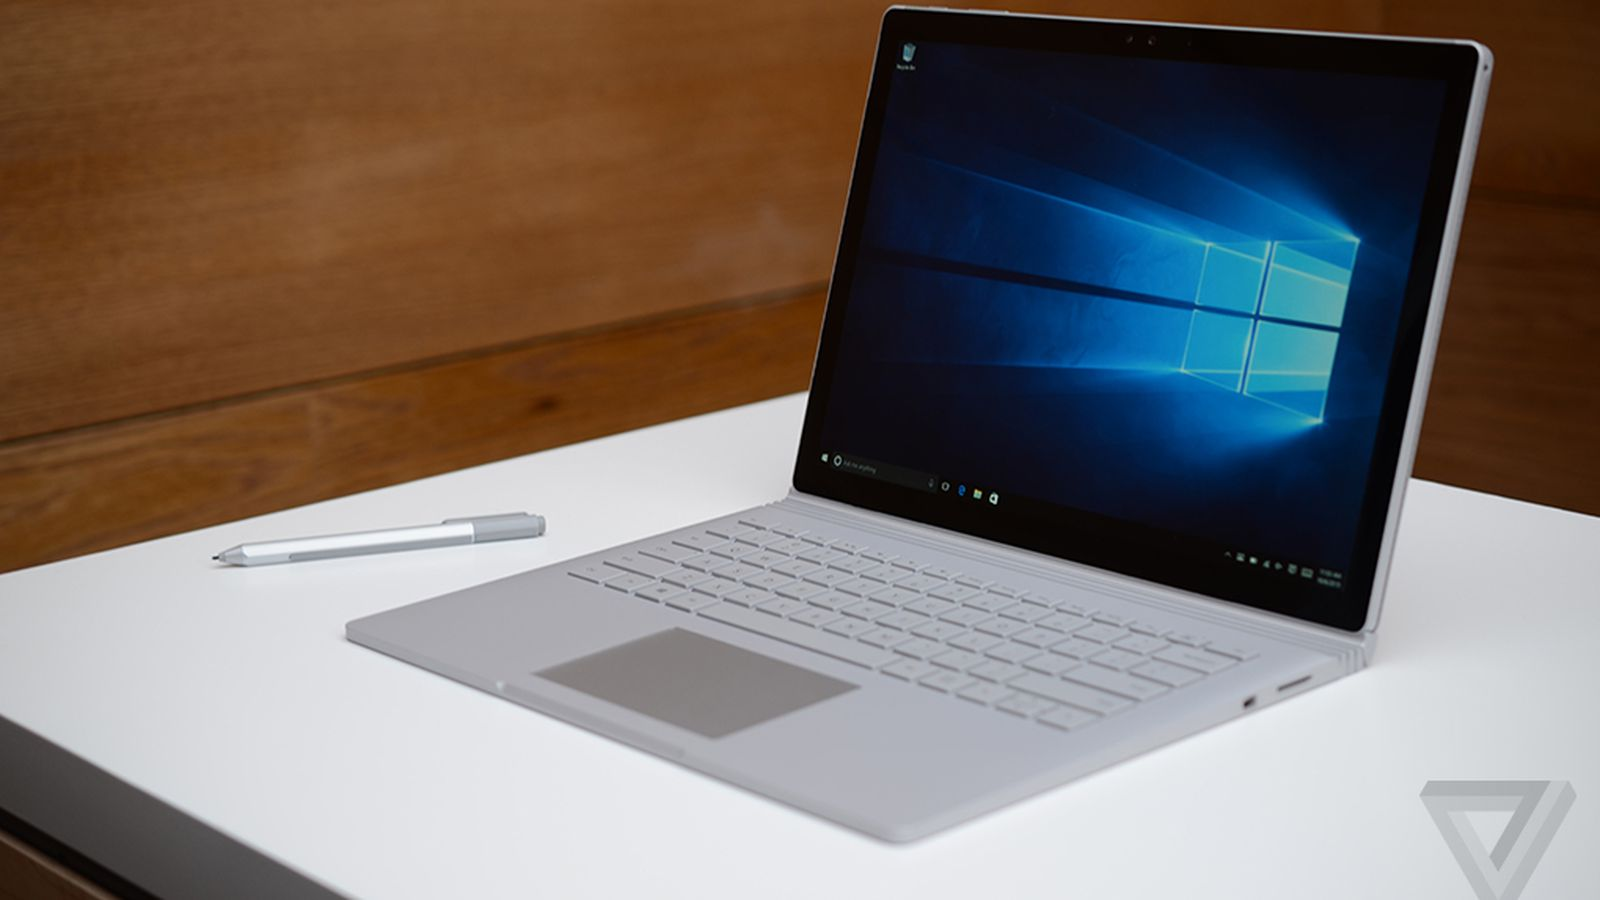 a closer look at microsoft 39 s new surface book laptop the verge. Black Bedroom Furniture Sets. Home Design Ideas